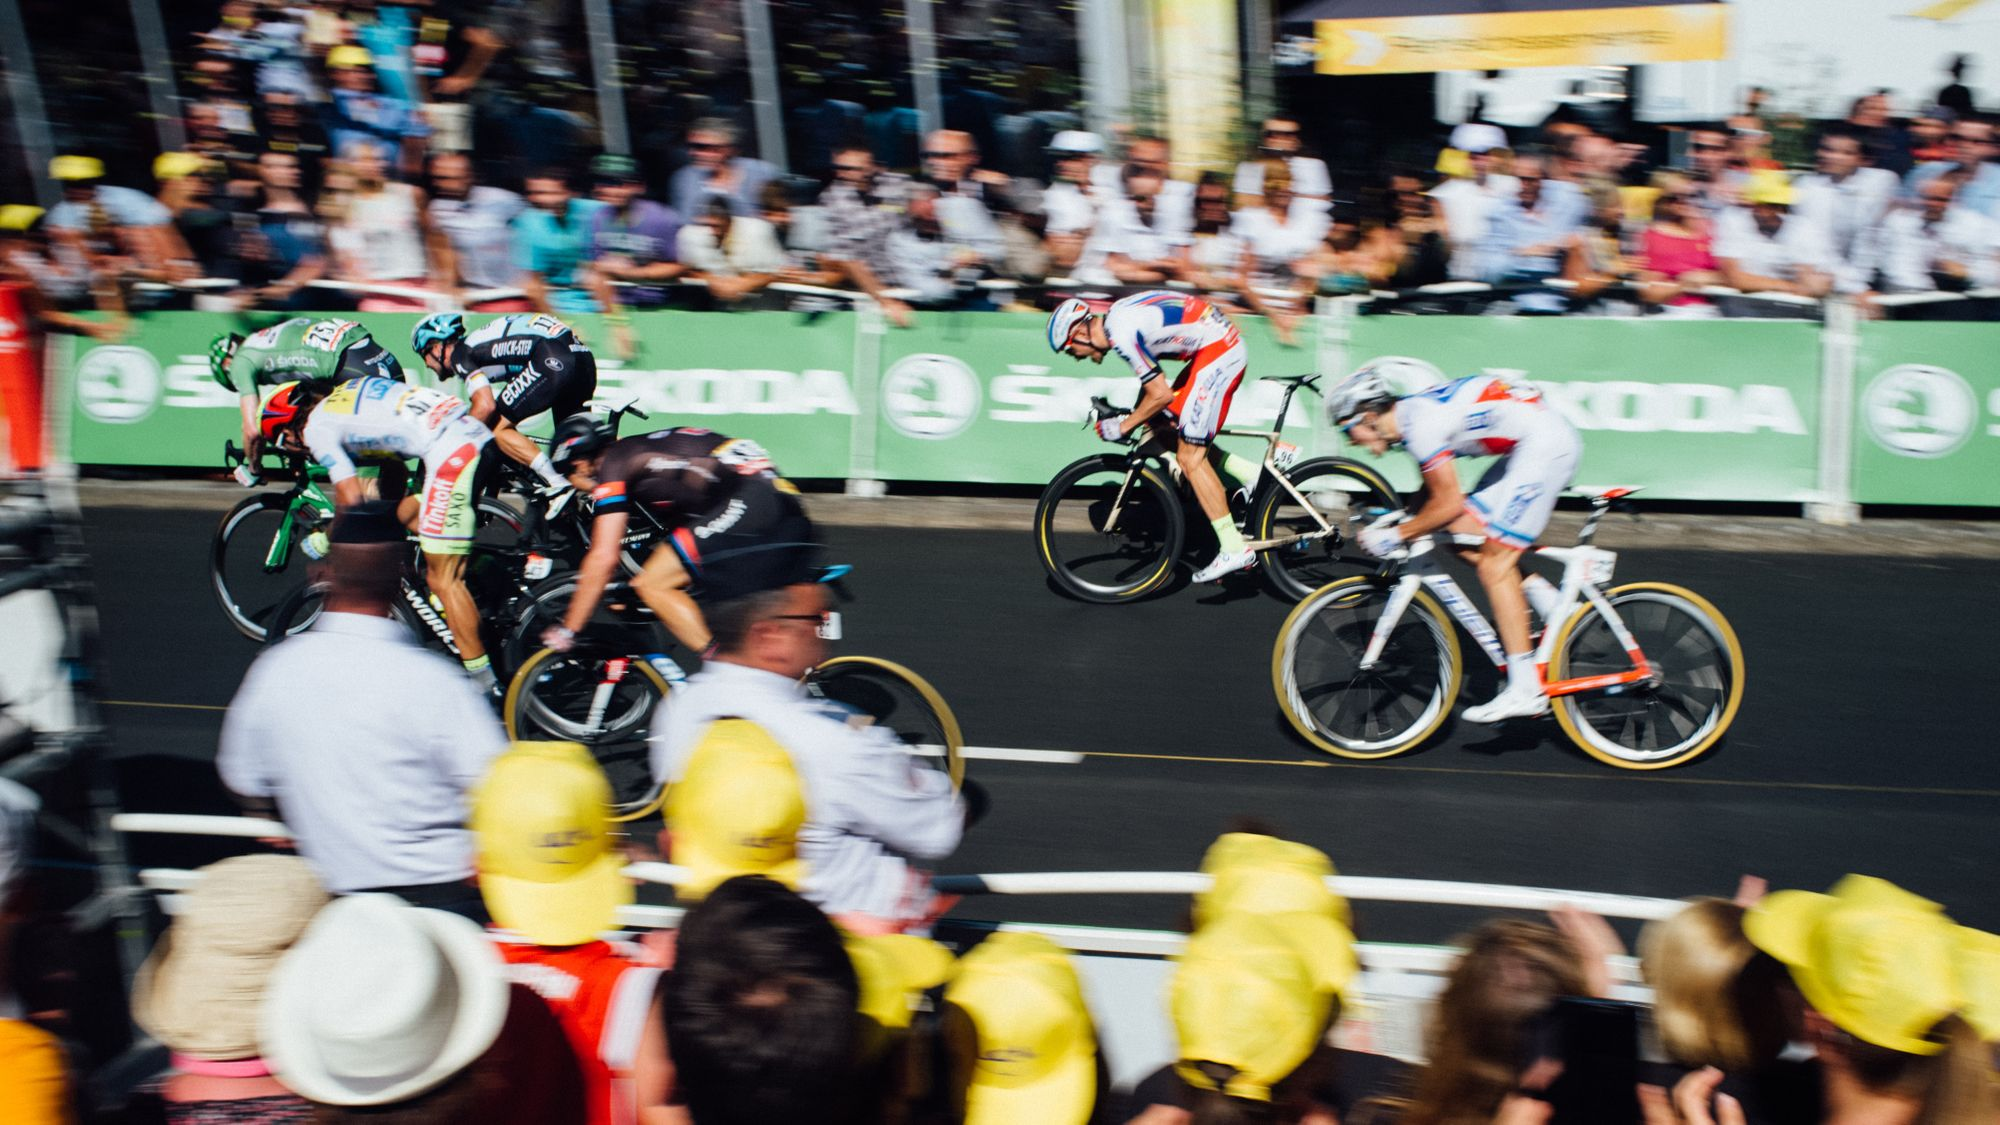 Controlled chaos: filming the Tour de France